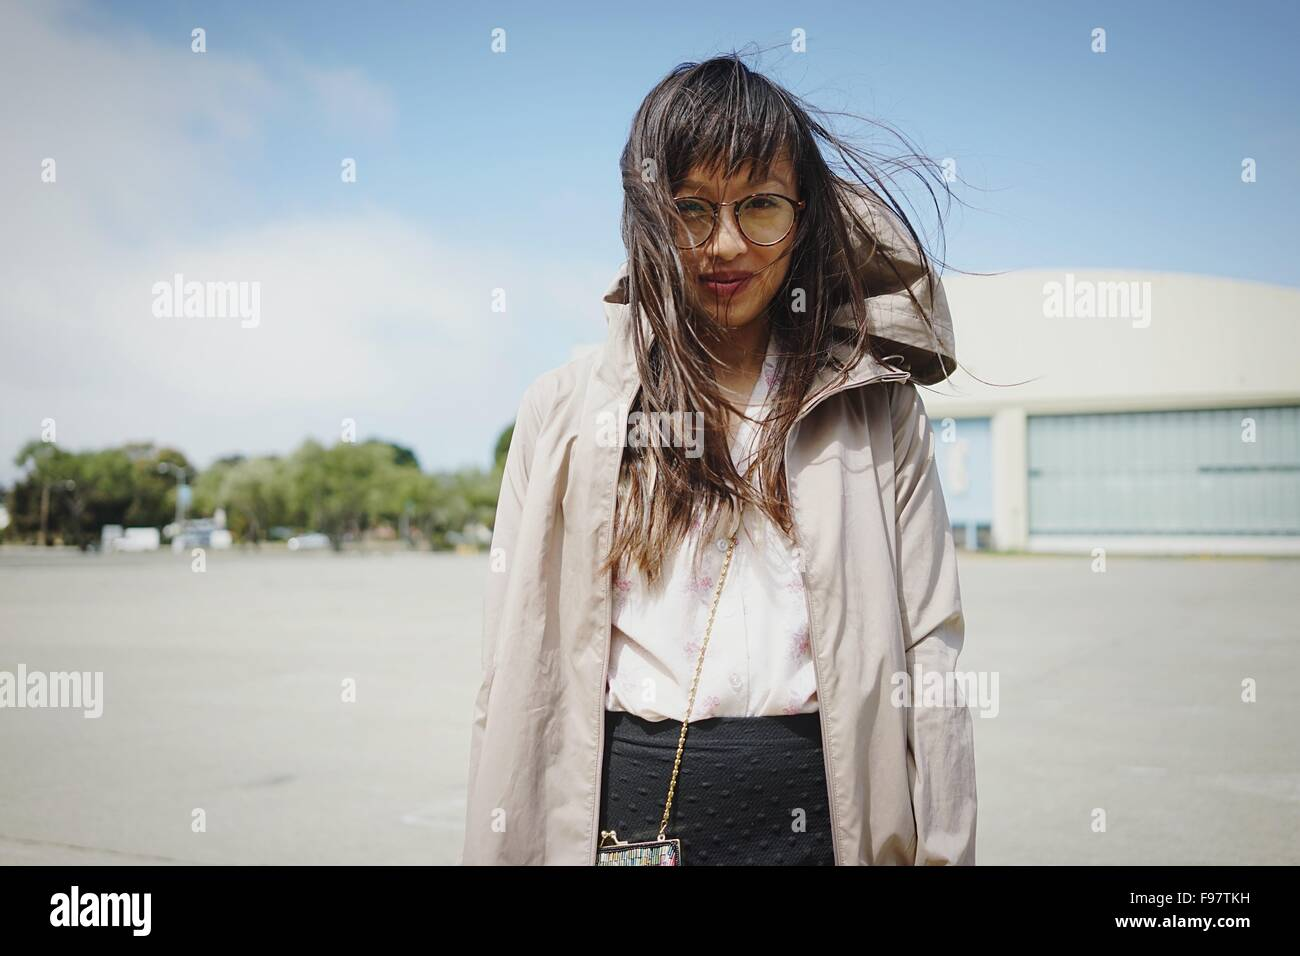 Portrait Of Woman Standing By Building Against Sky - Stock Image